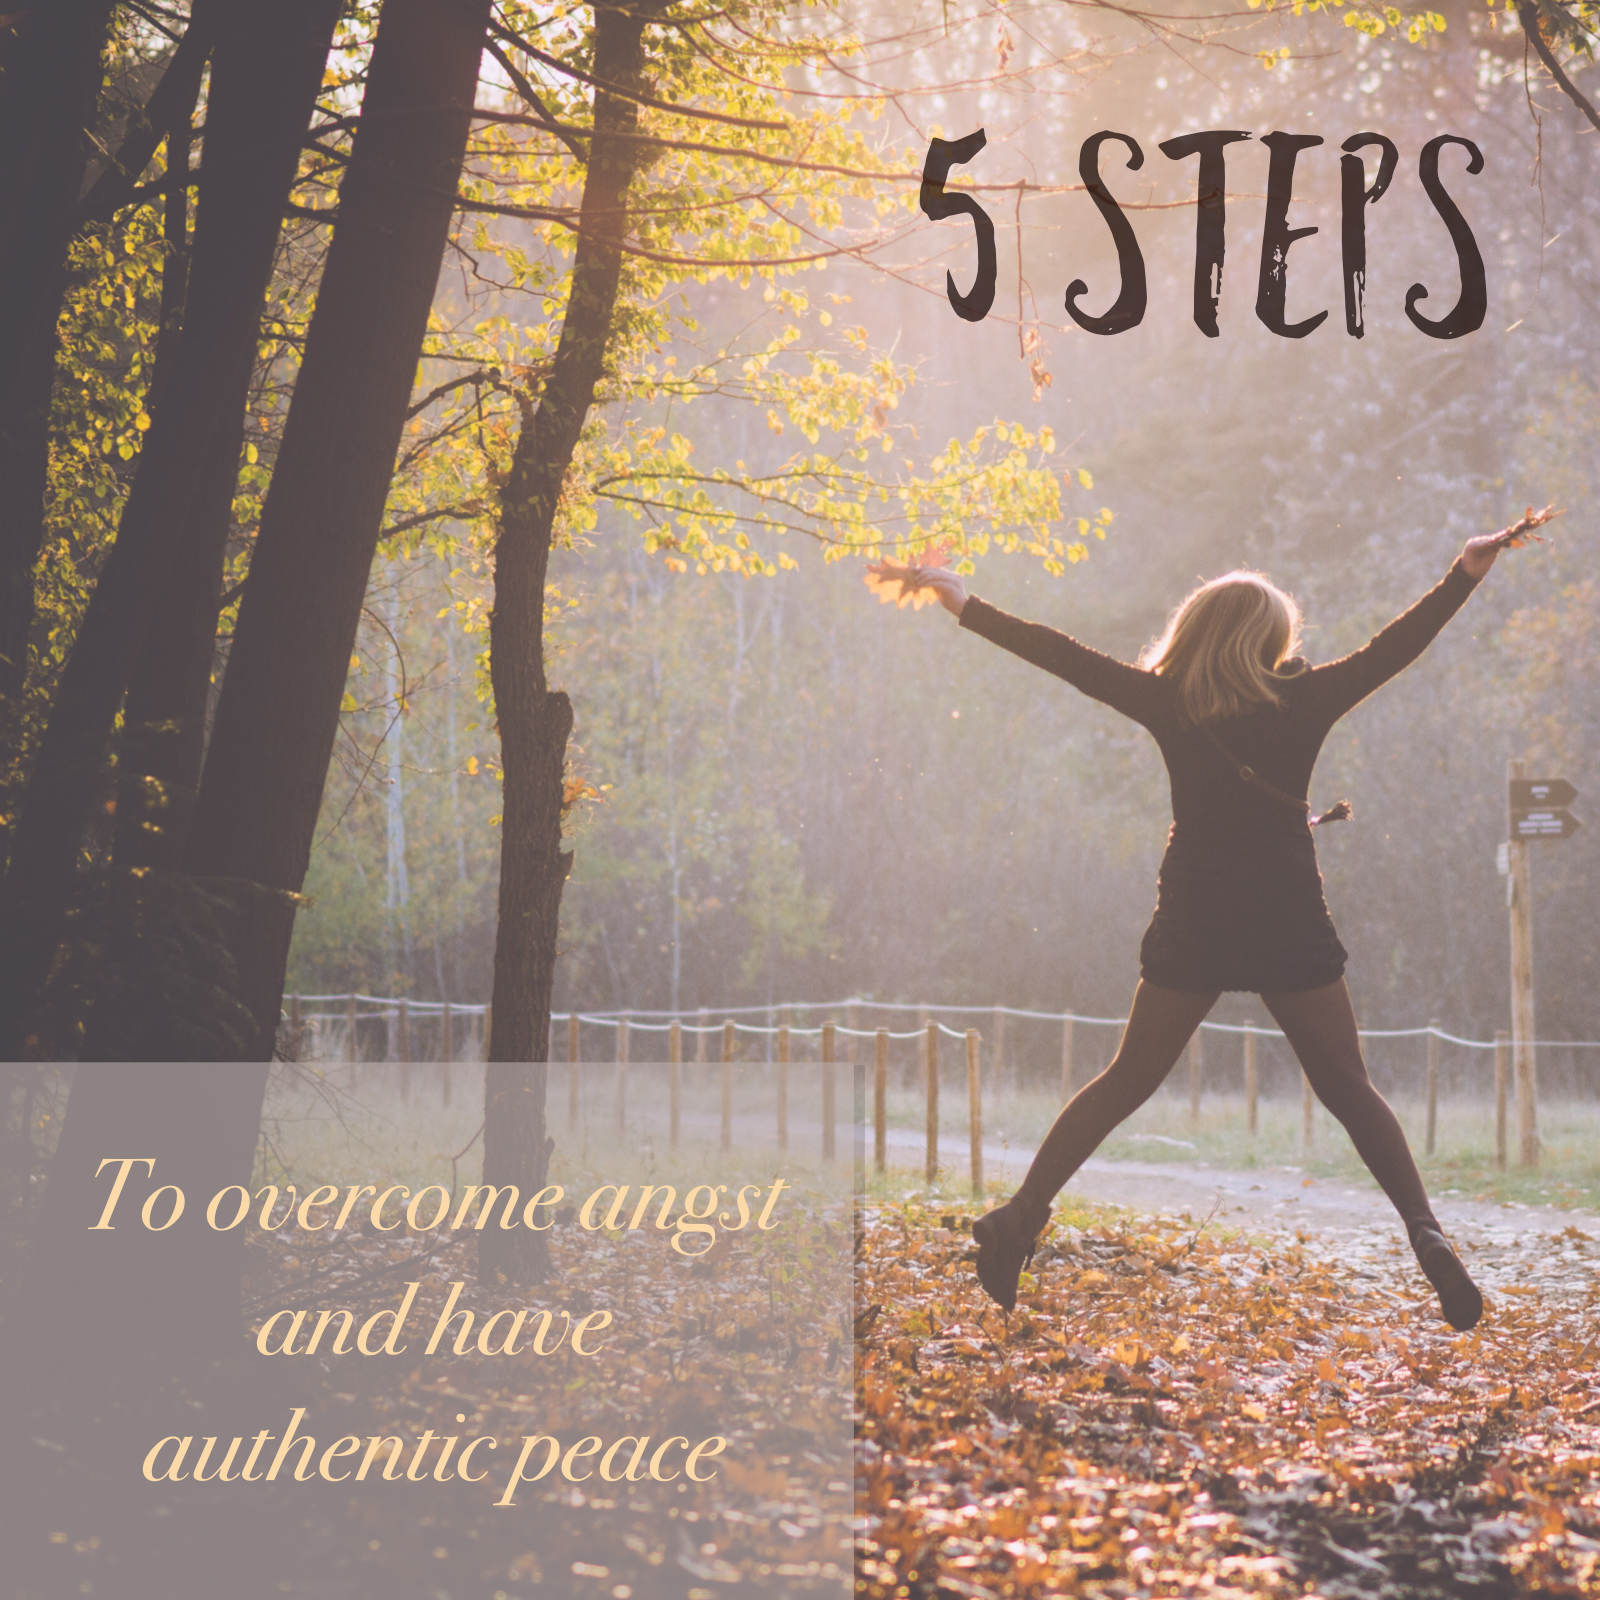 5 Steps To Overcome Angst And Have Authentic Peace